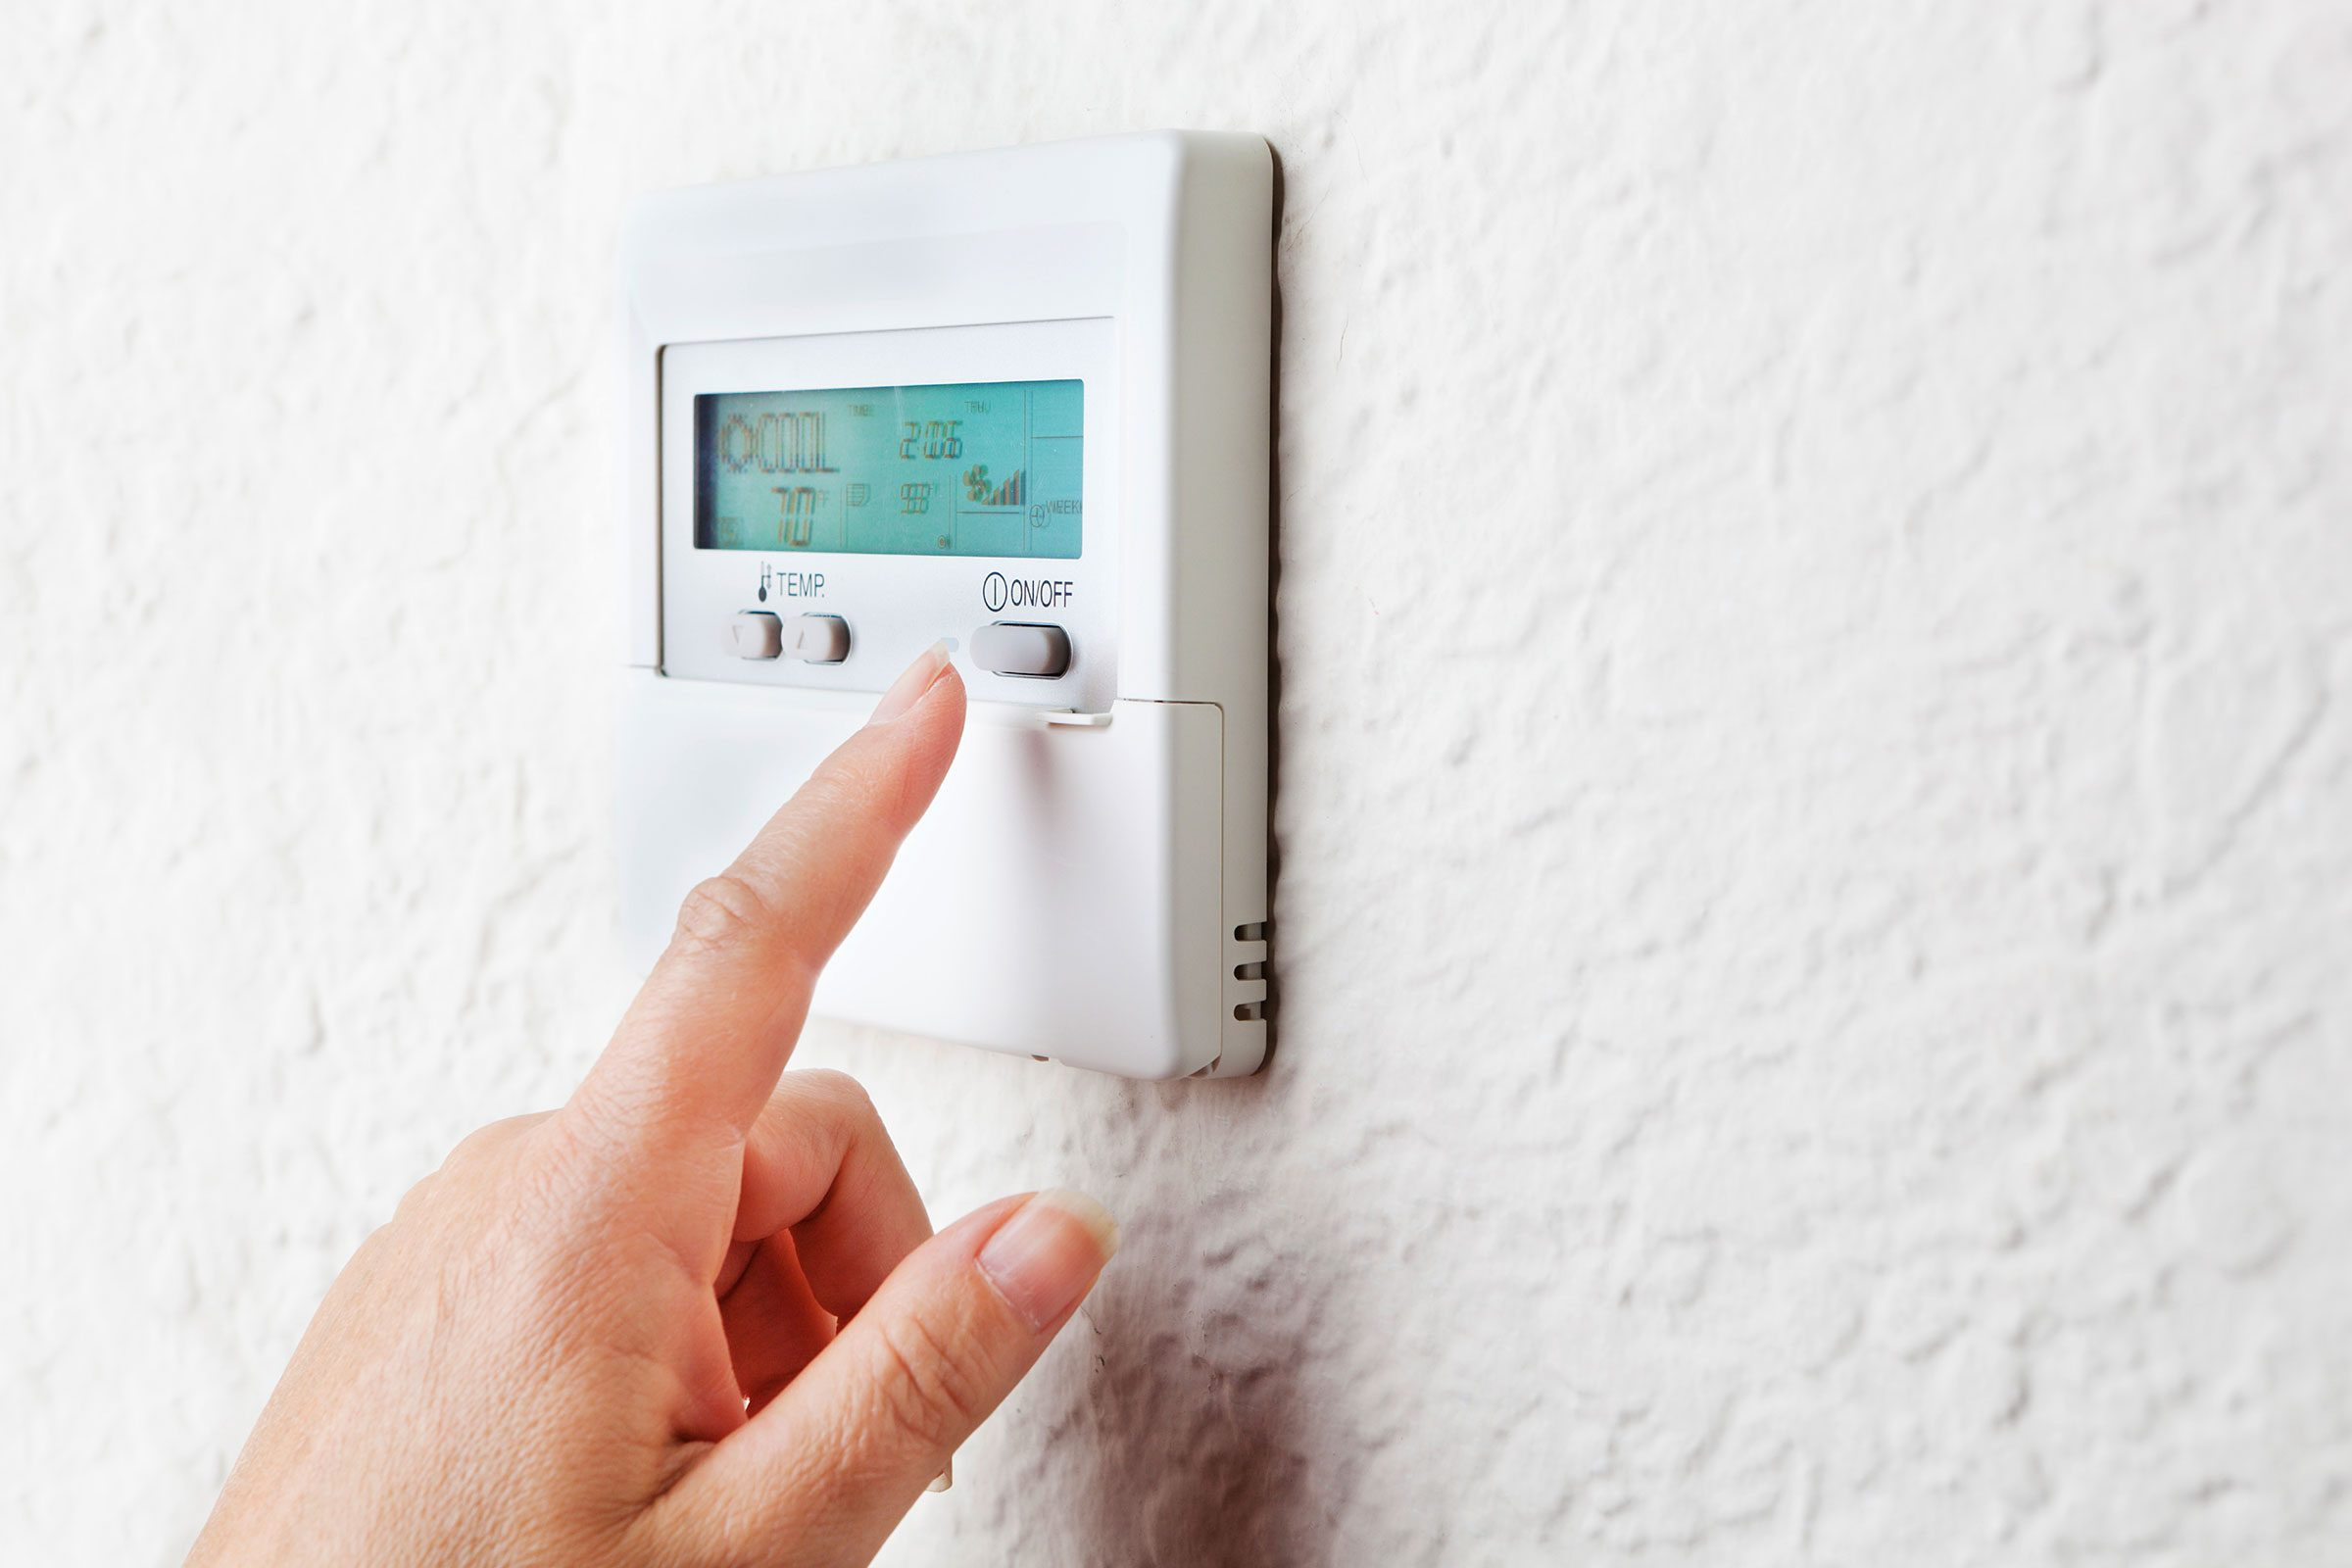 Run the air conditioner at home